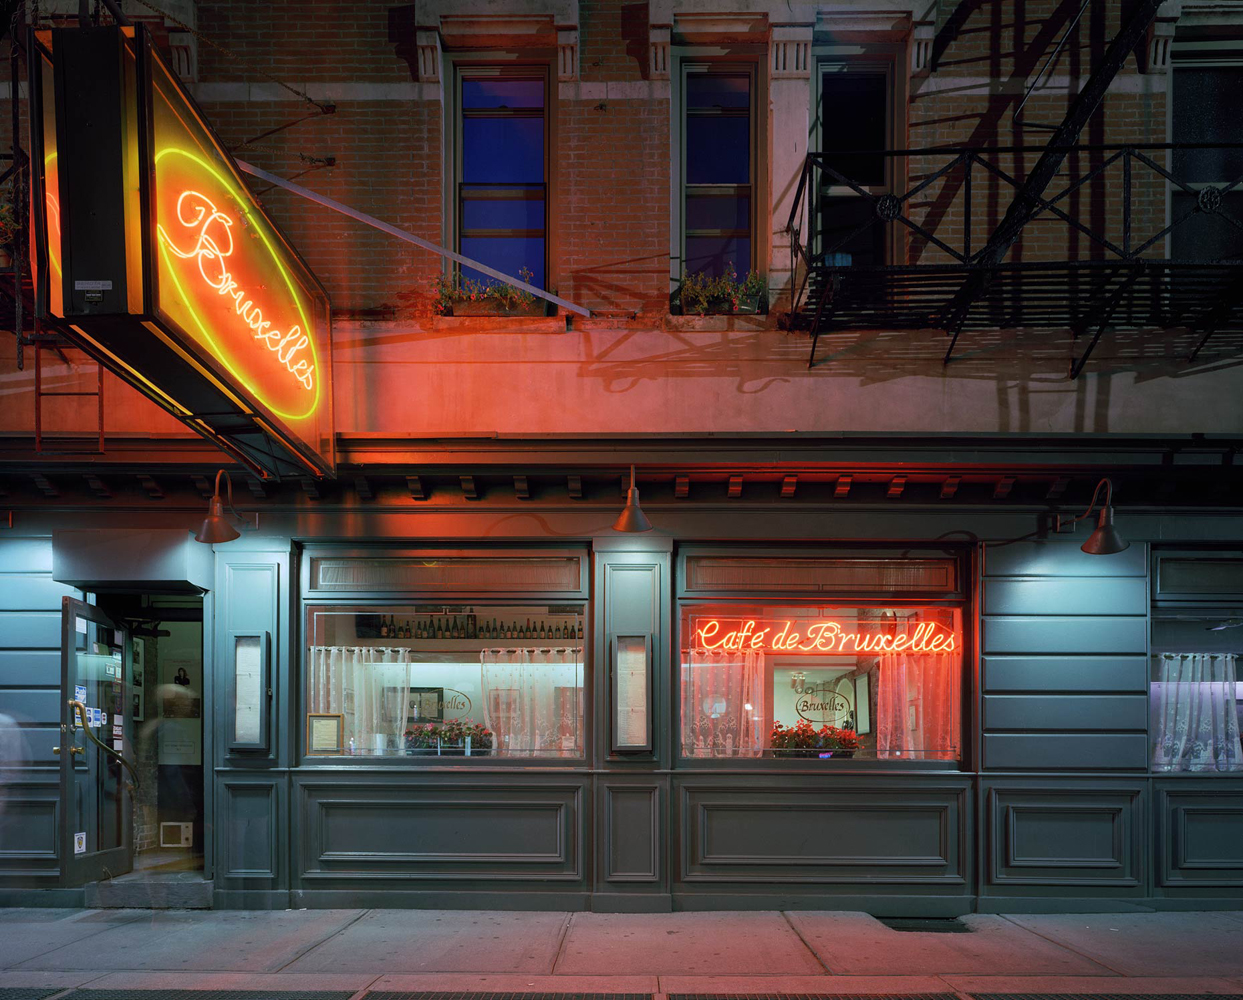 Cafe de Bruxelles, 118 Greenwich Avenue, West Village, New York 2005-2007, by David Leventi. Print on Dibond of the exterior and neon signs at night.